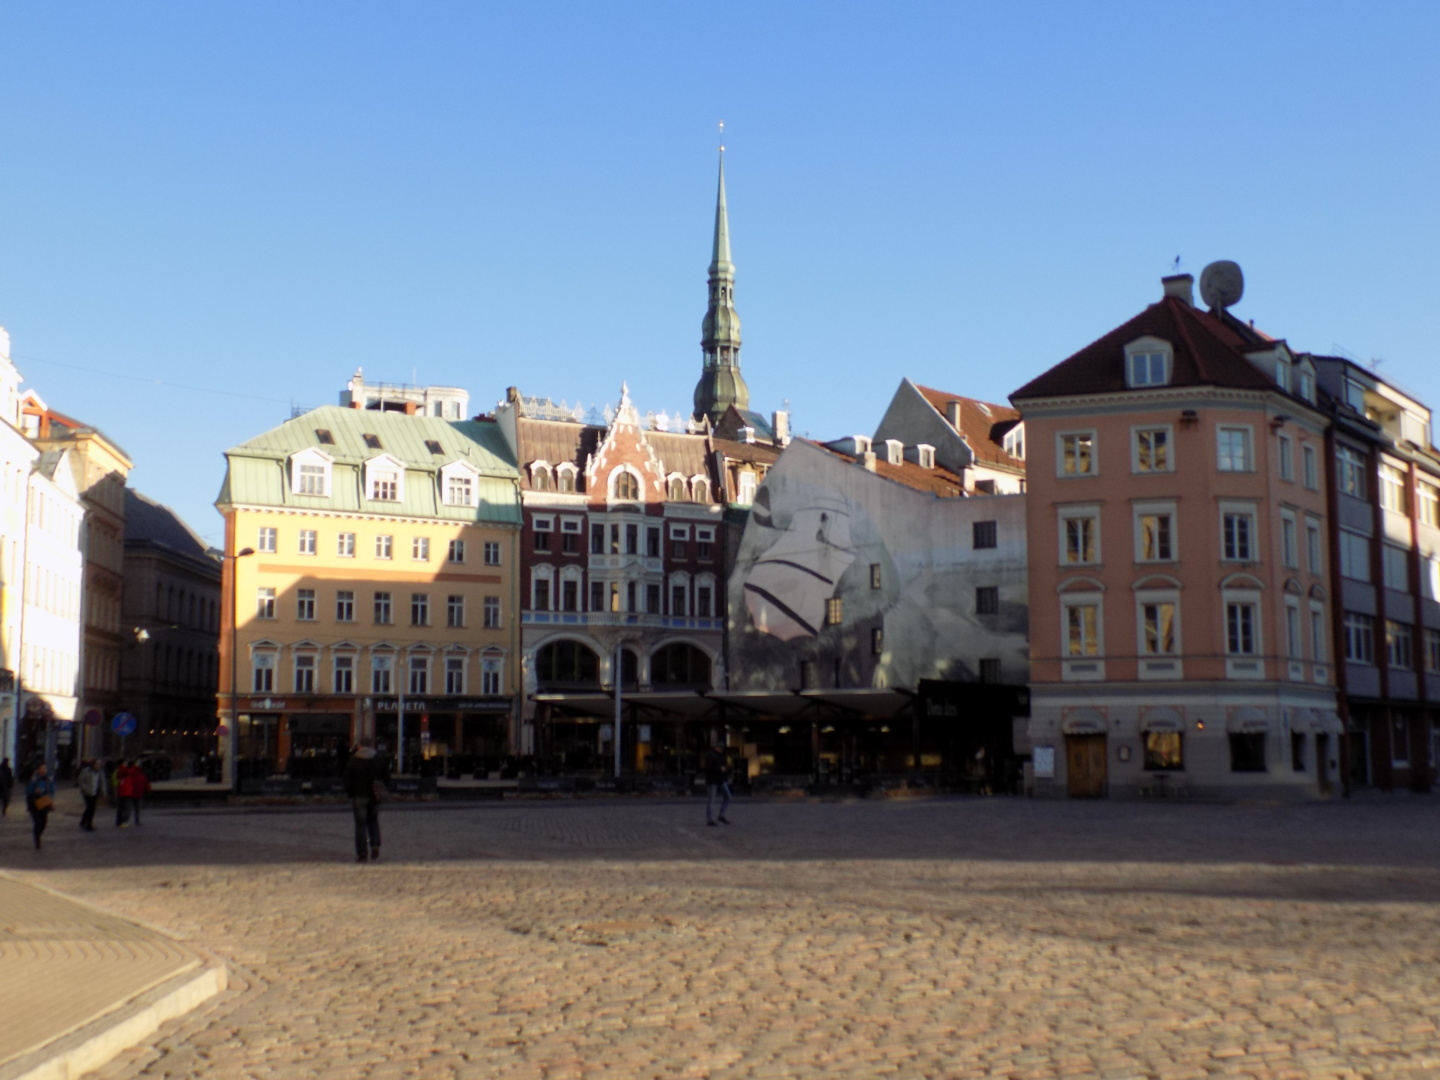 Europe | Day 2 in Riga, Latvia